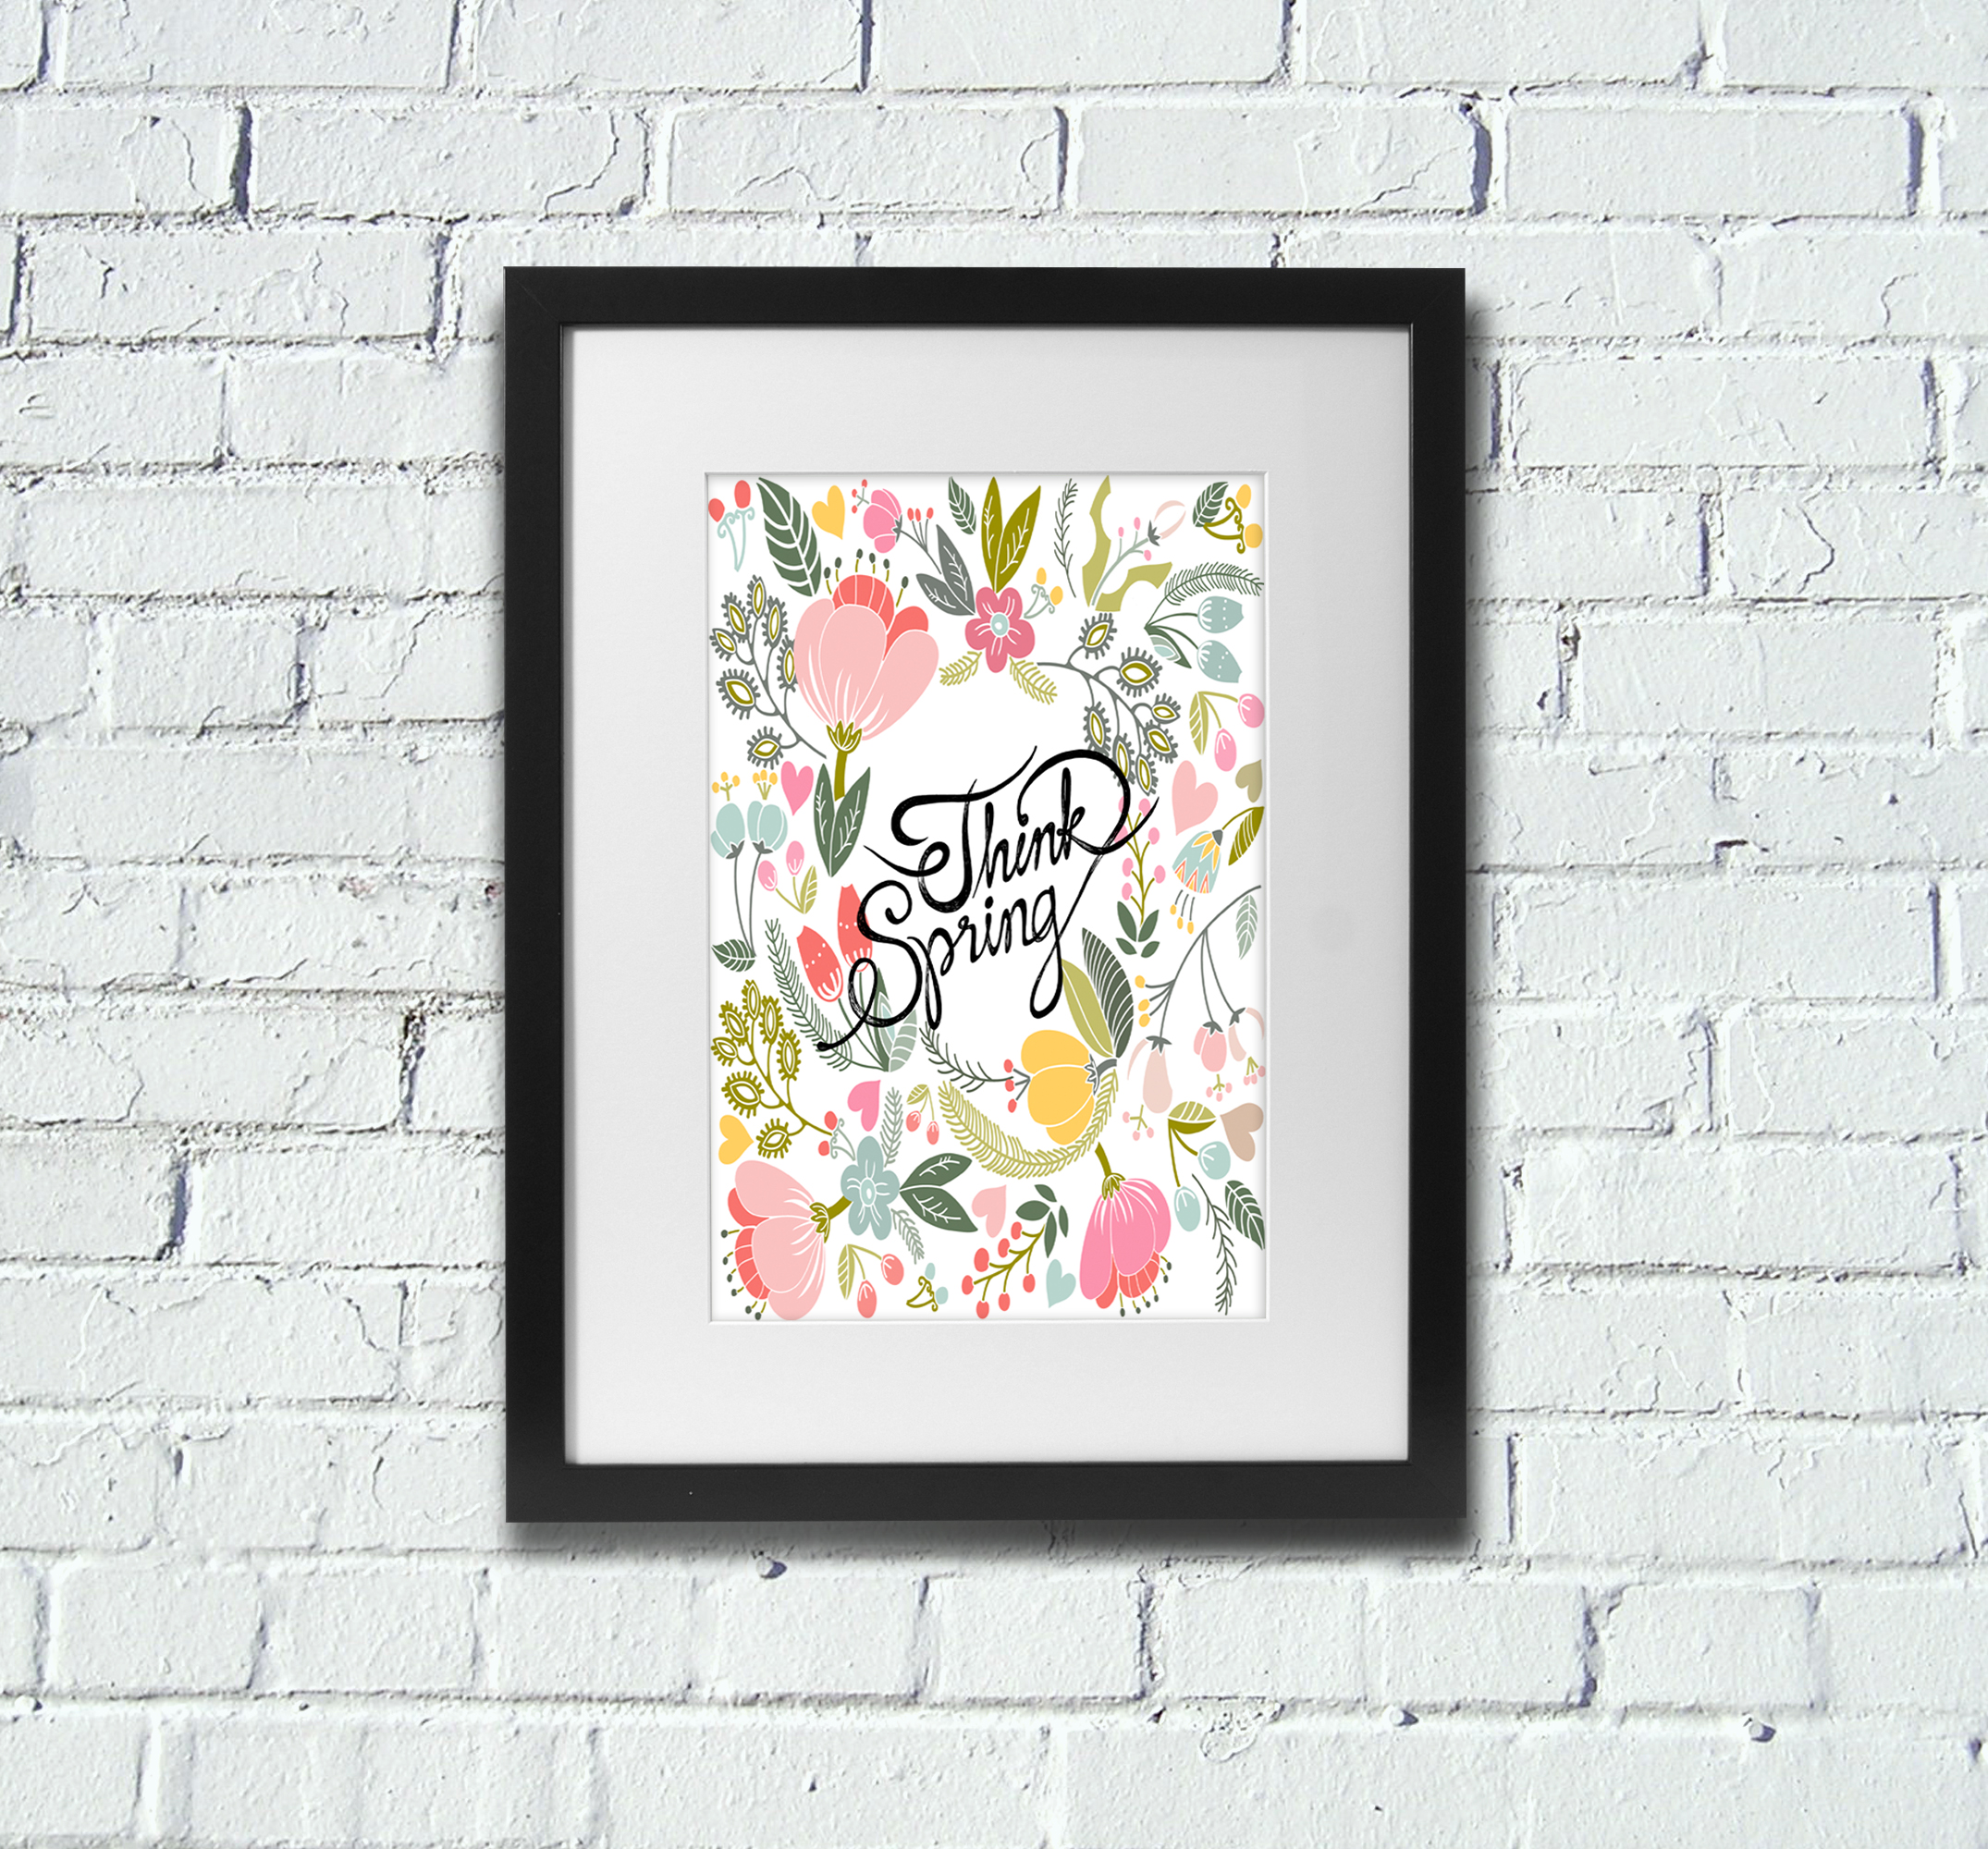 Free Wall Printables Poster Archives The Graffical Muse